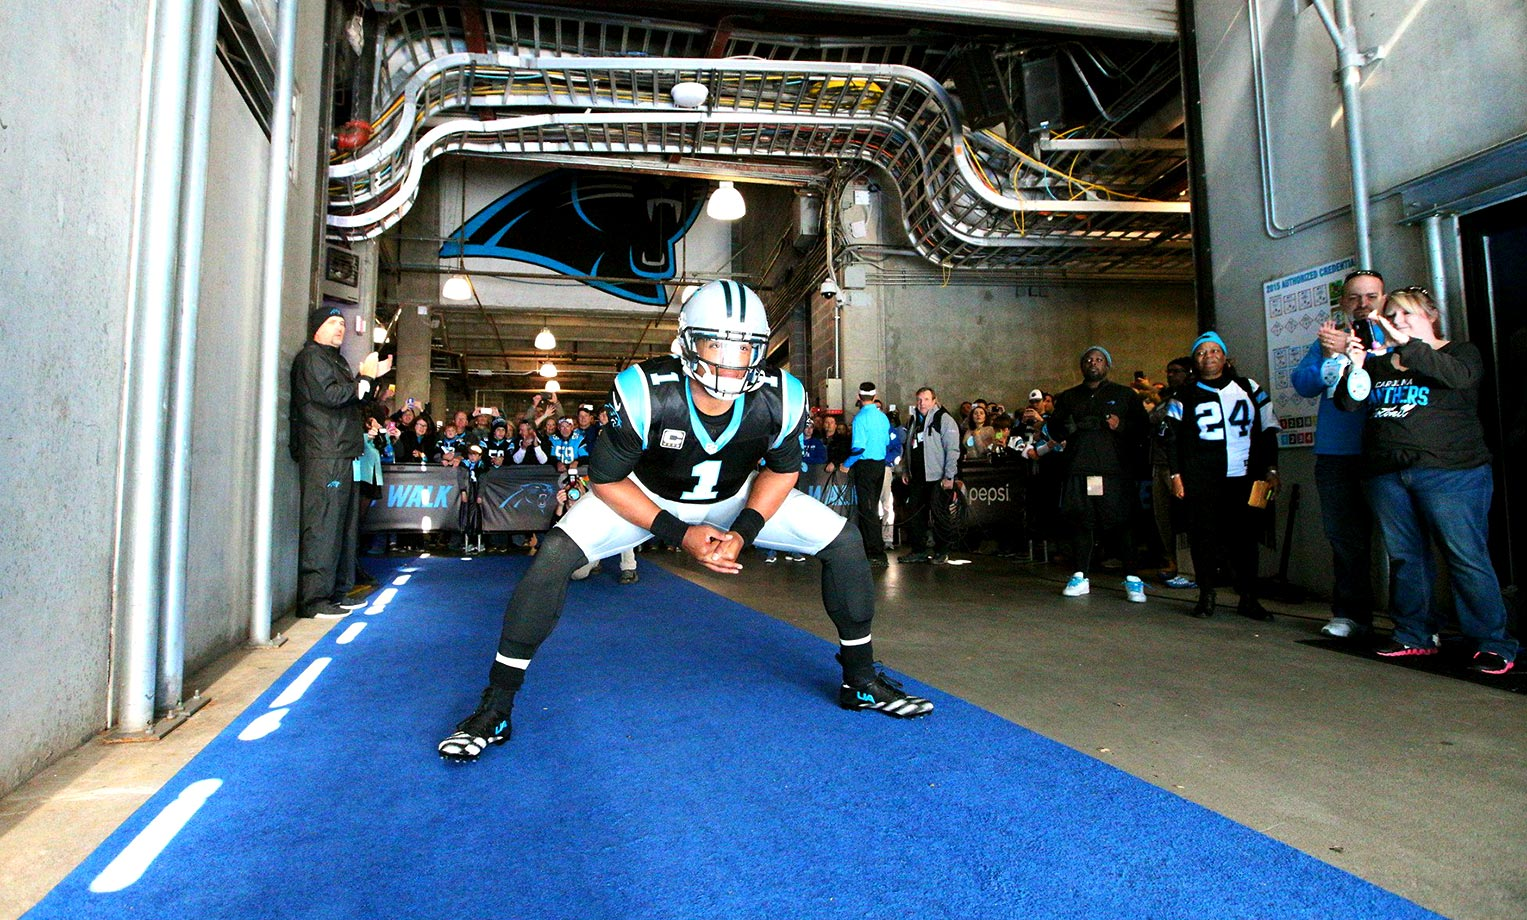 Cam Newton prepares to come out of the tunnel before a game at Bank of America Stadium.                                                               Text credit: Daniel Hersh